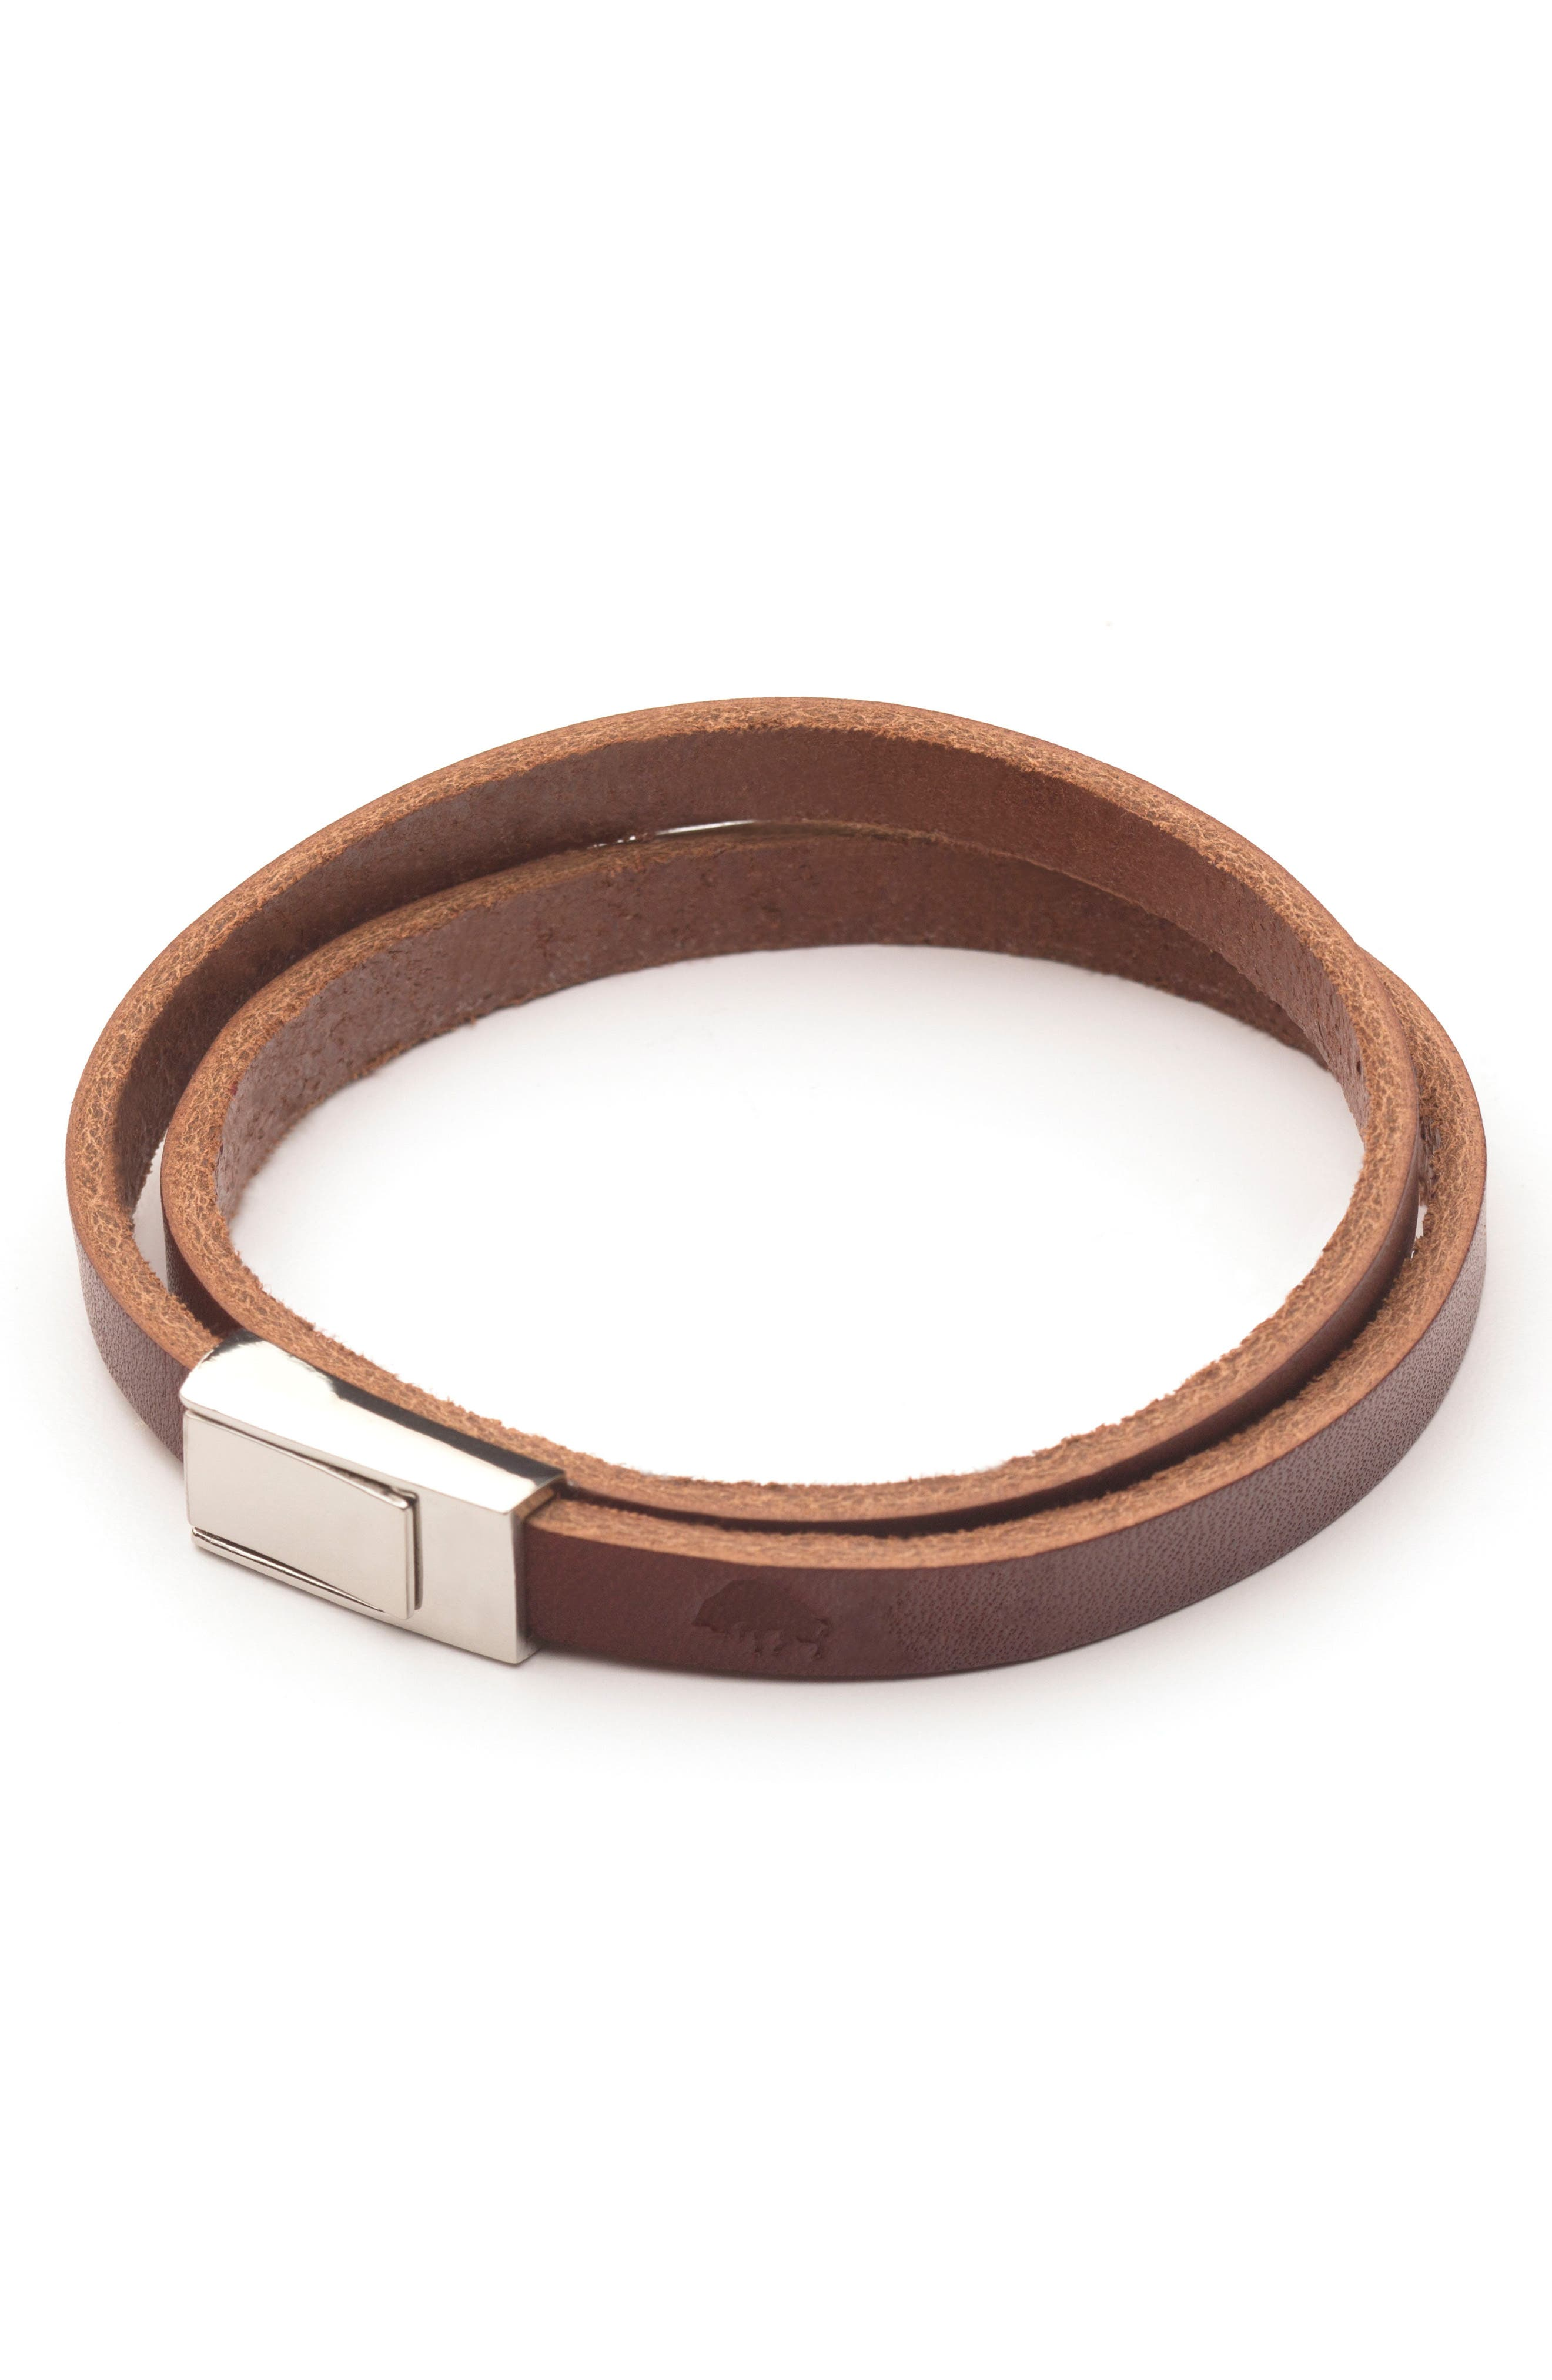 Ezra Arthur Double Wrap Leather Bracelet